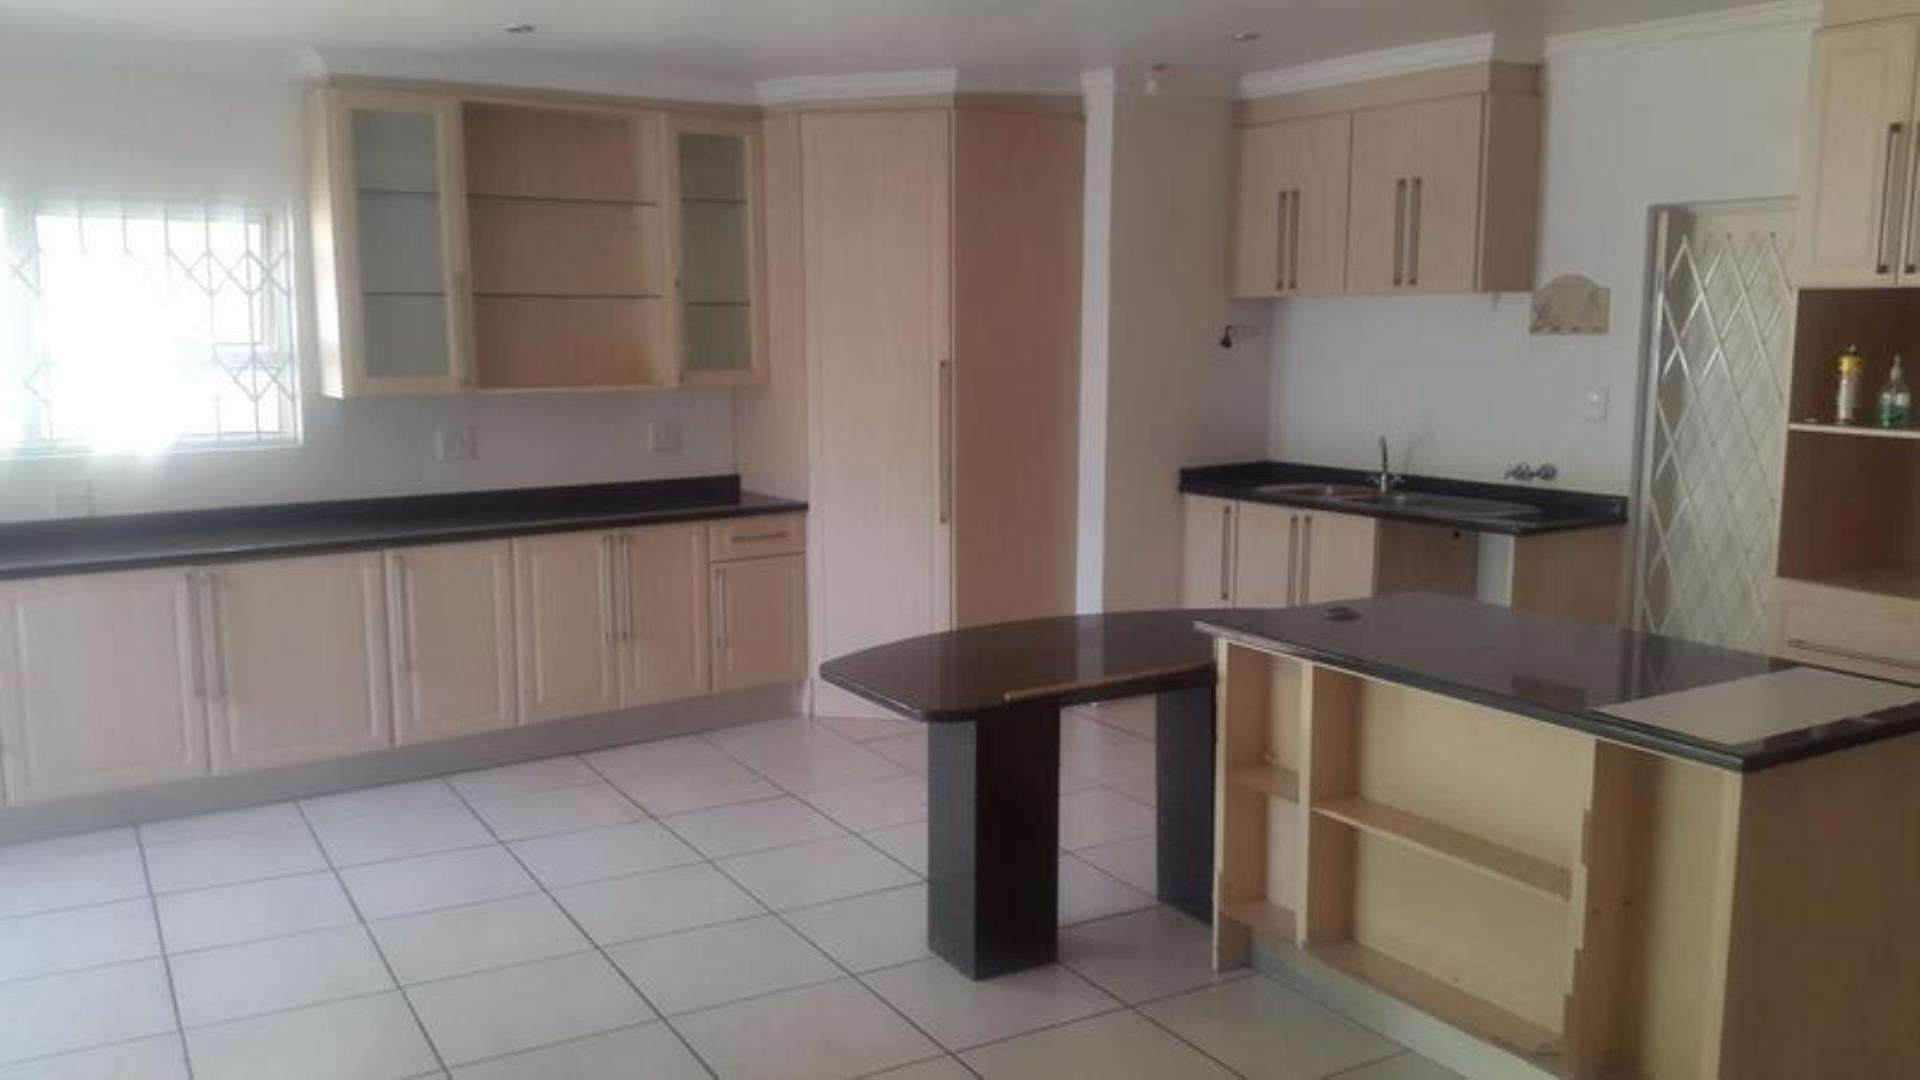 5 Bedroom  House for Sale in Sandton - Gauteng